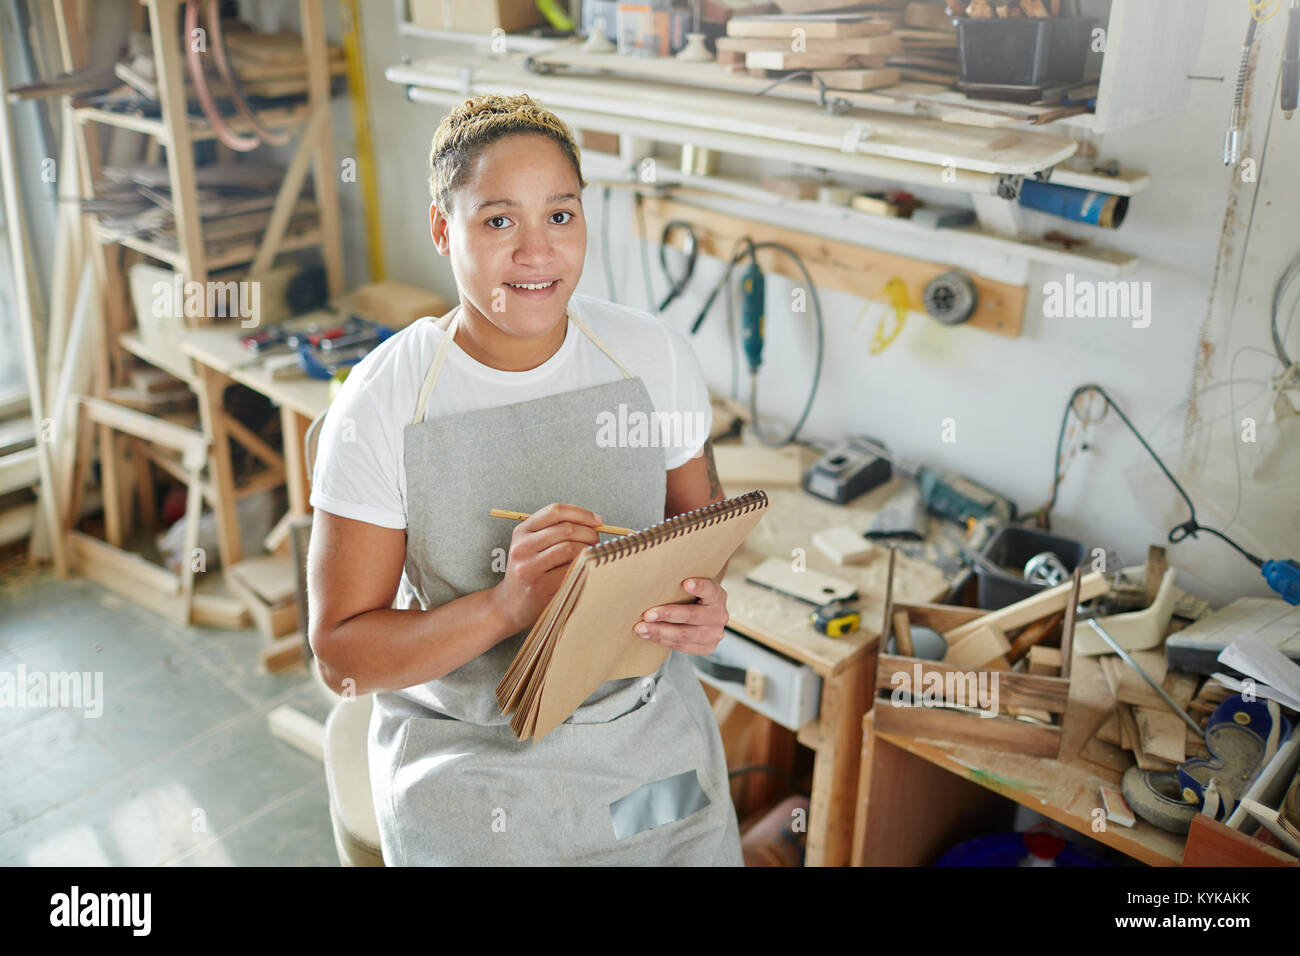 Carpenter with notepad - Stock Image